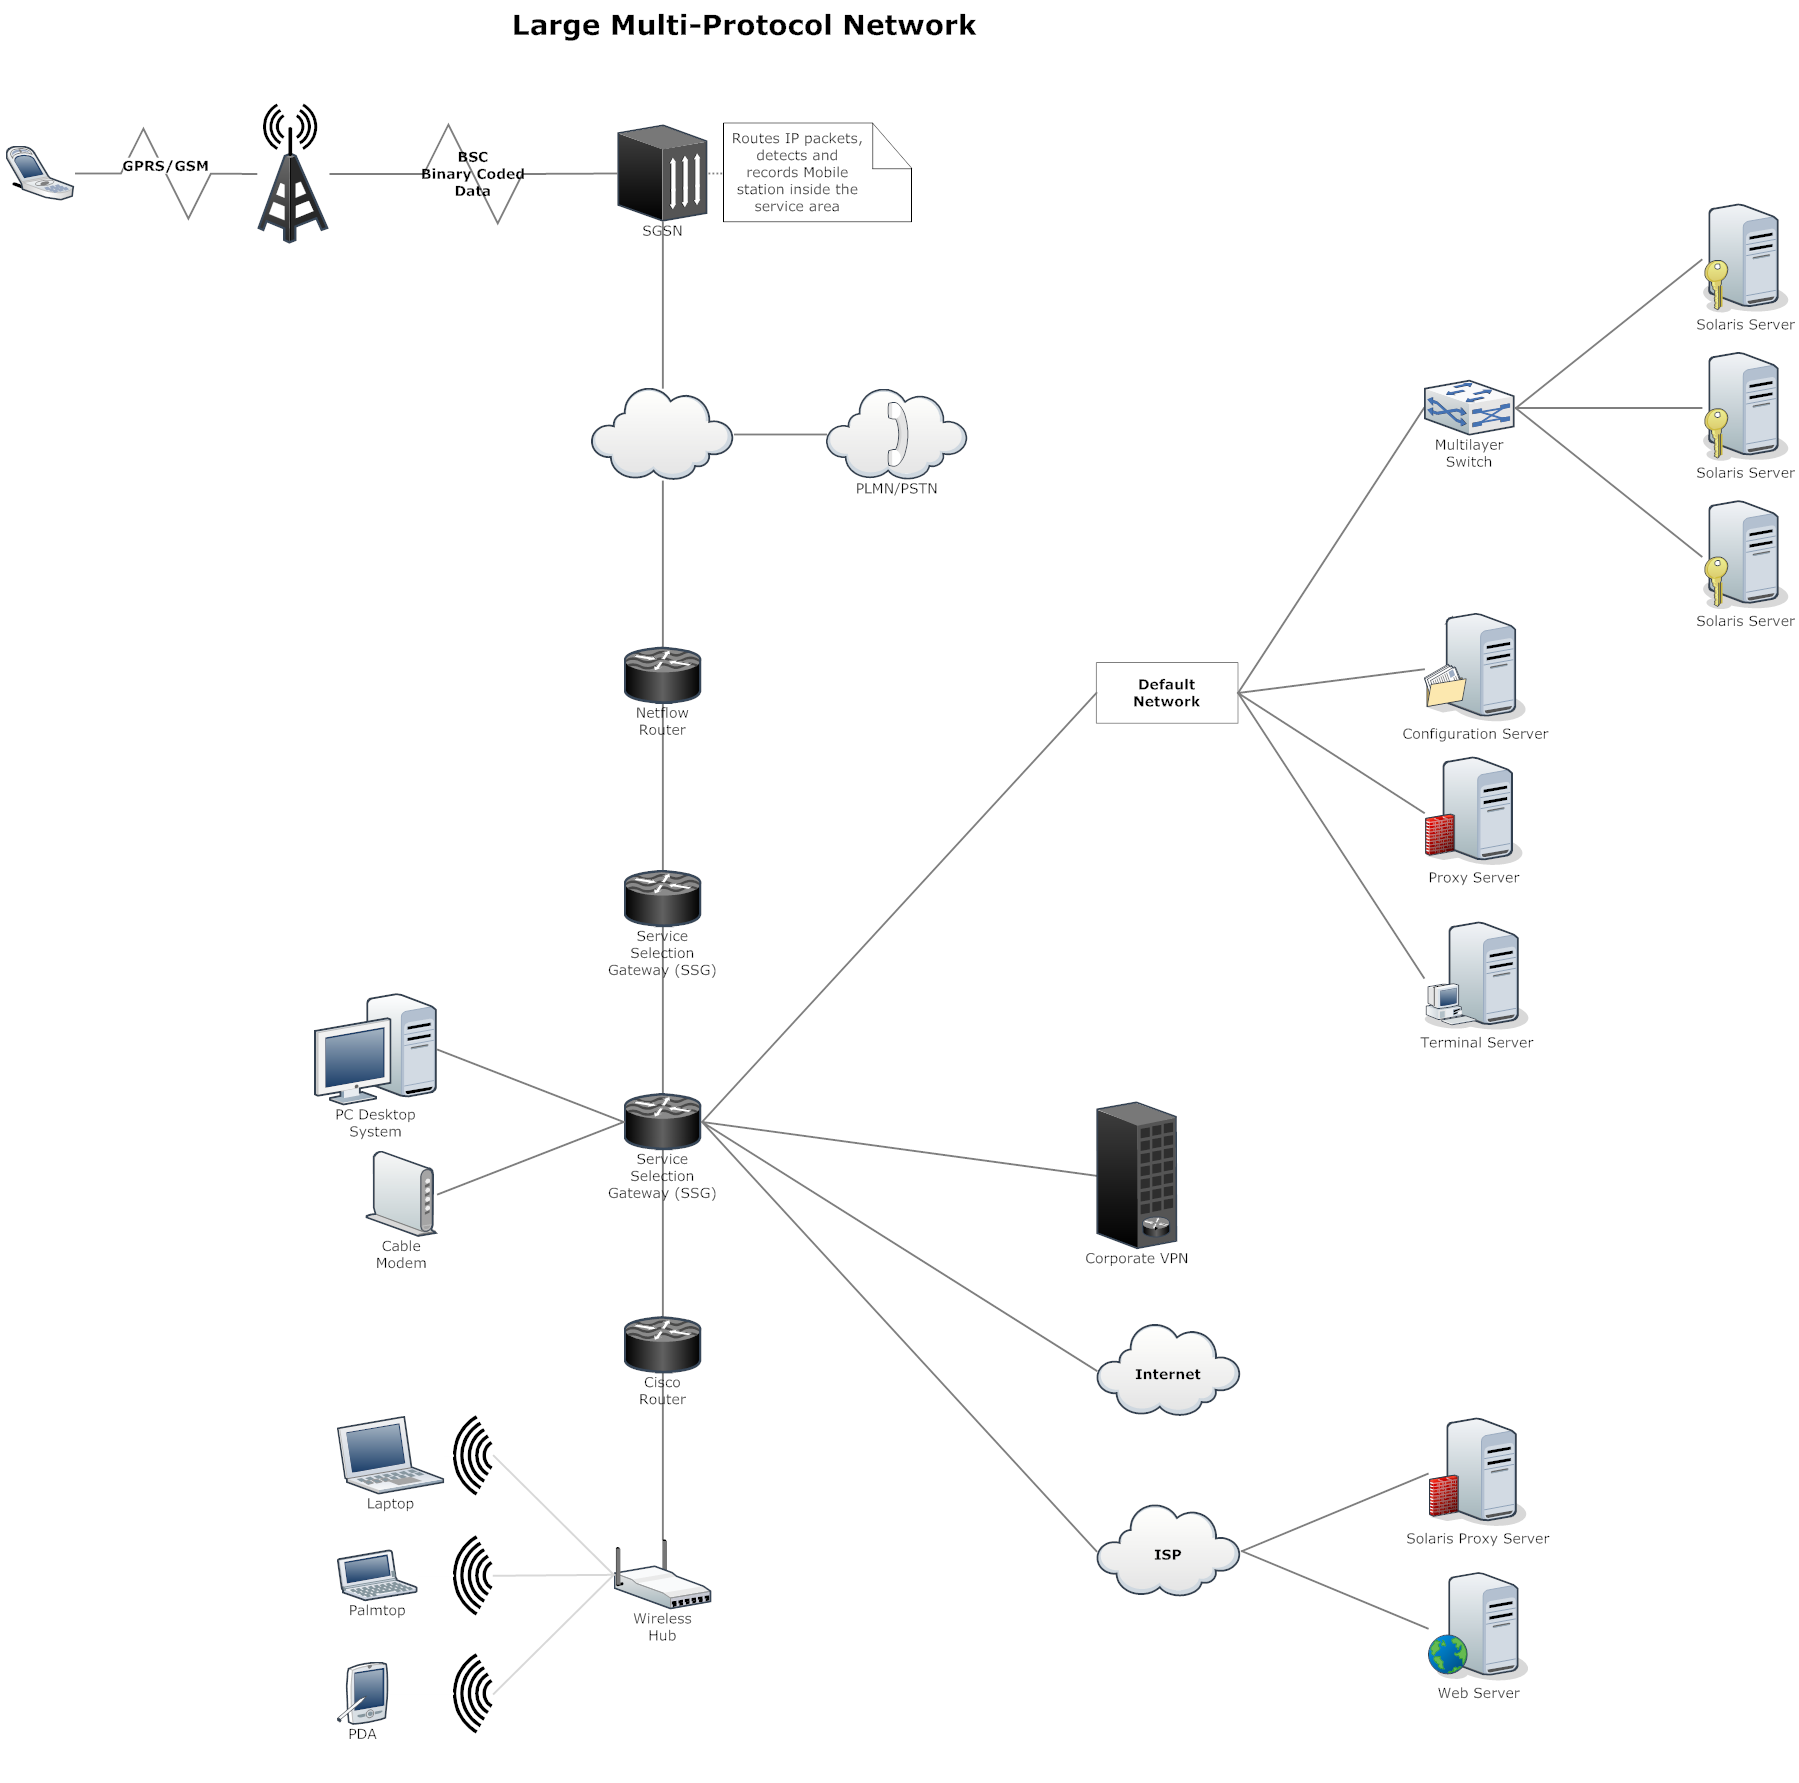 hight resolution of network diagram example large multi protocol network